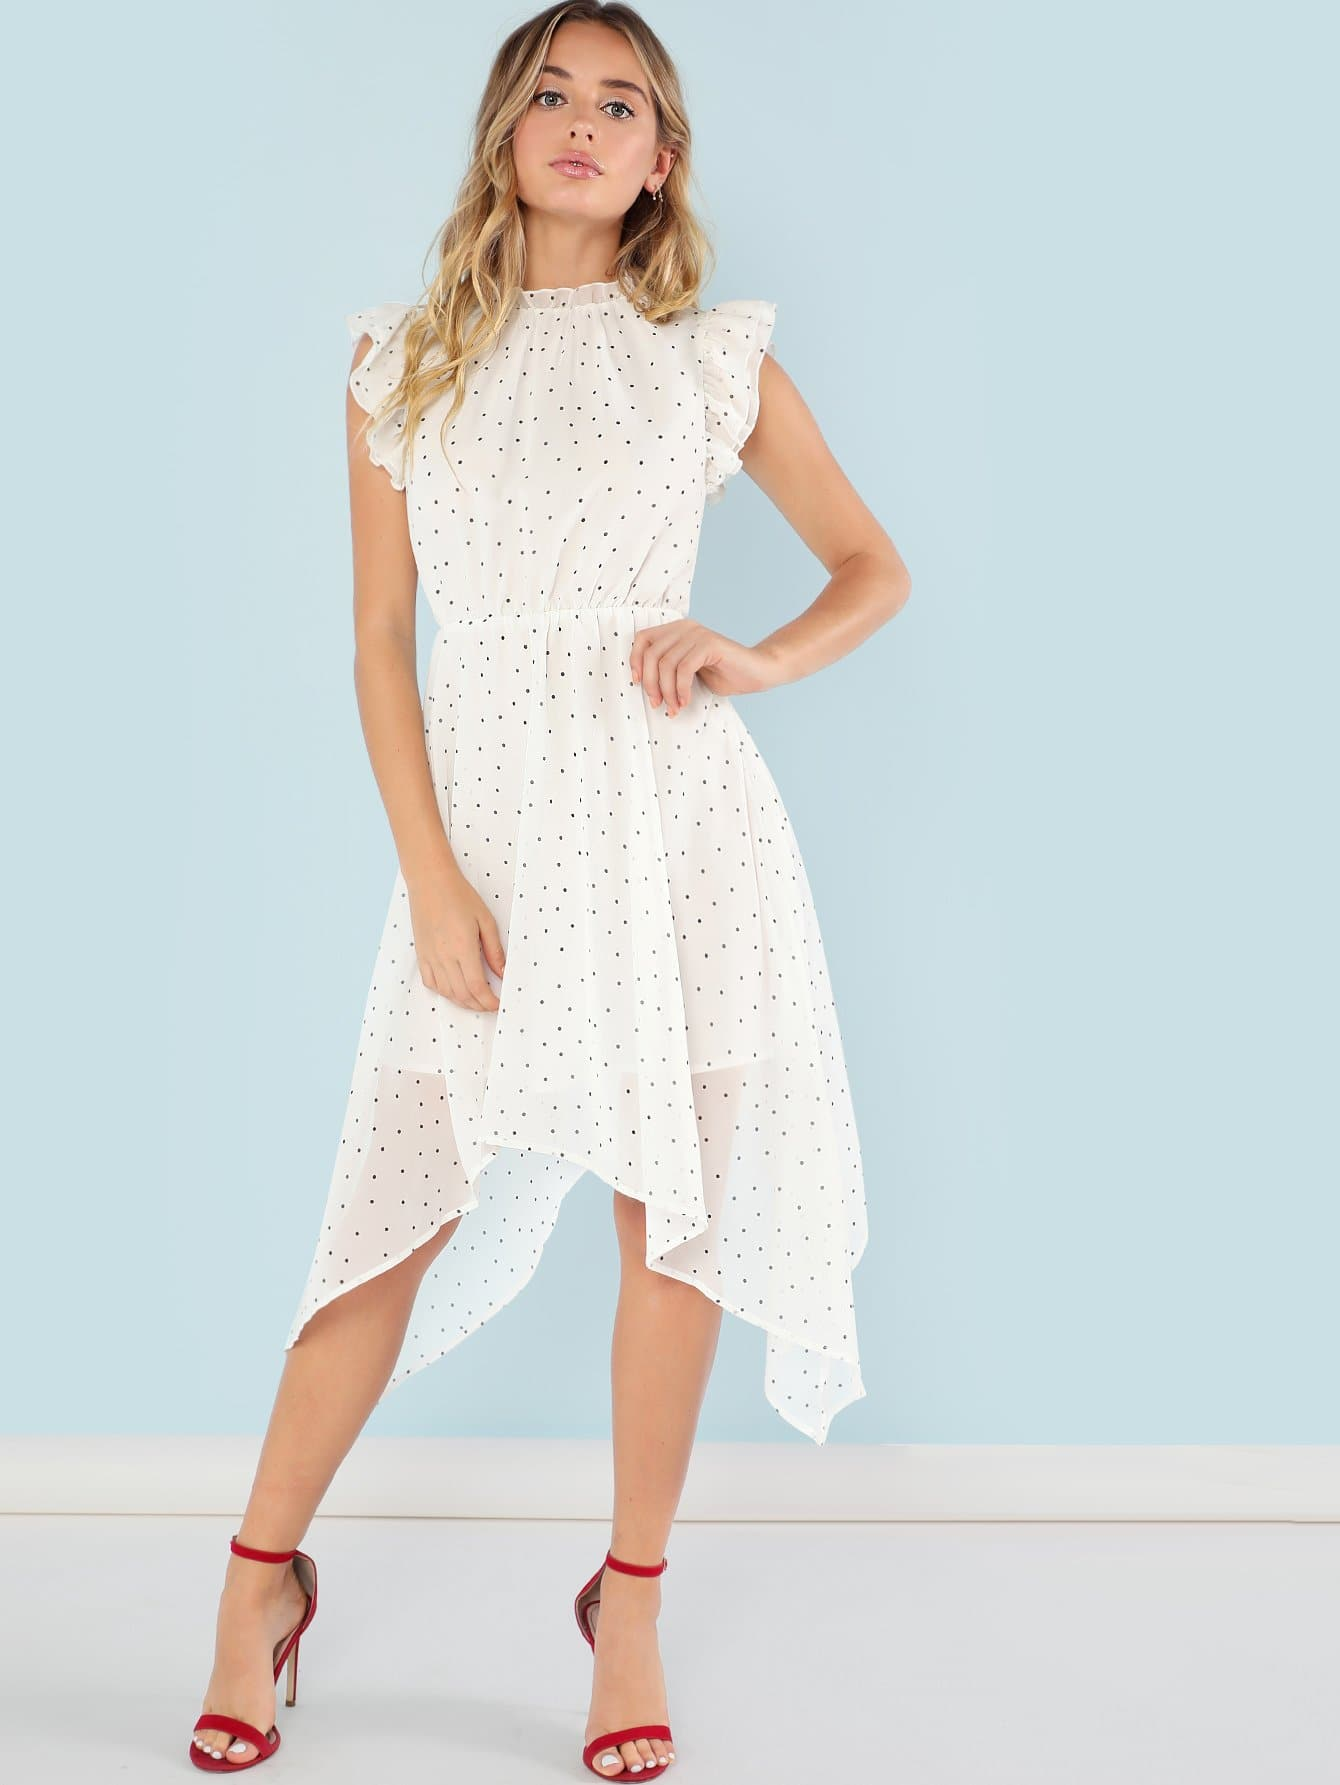 Layered Ruffle Armhole Polka Dot Dress ruffle armhole tie back polka dot top